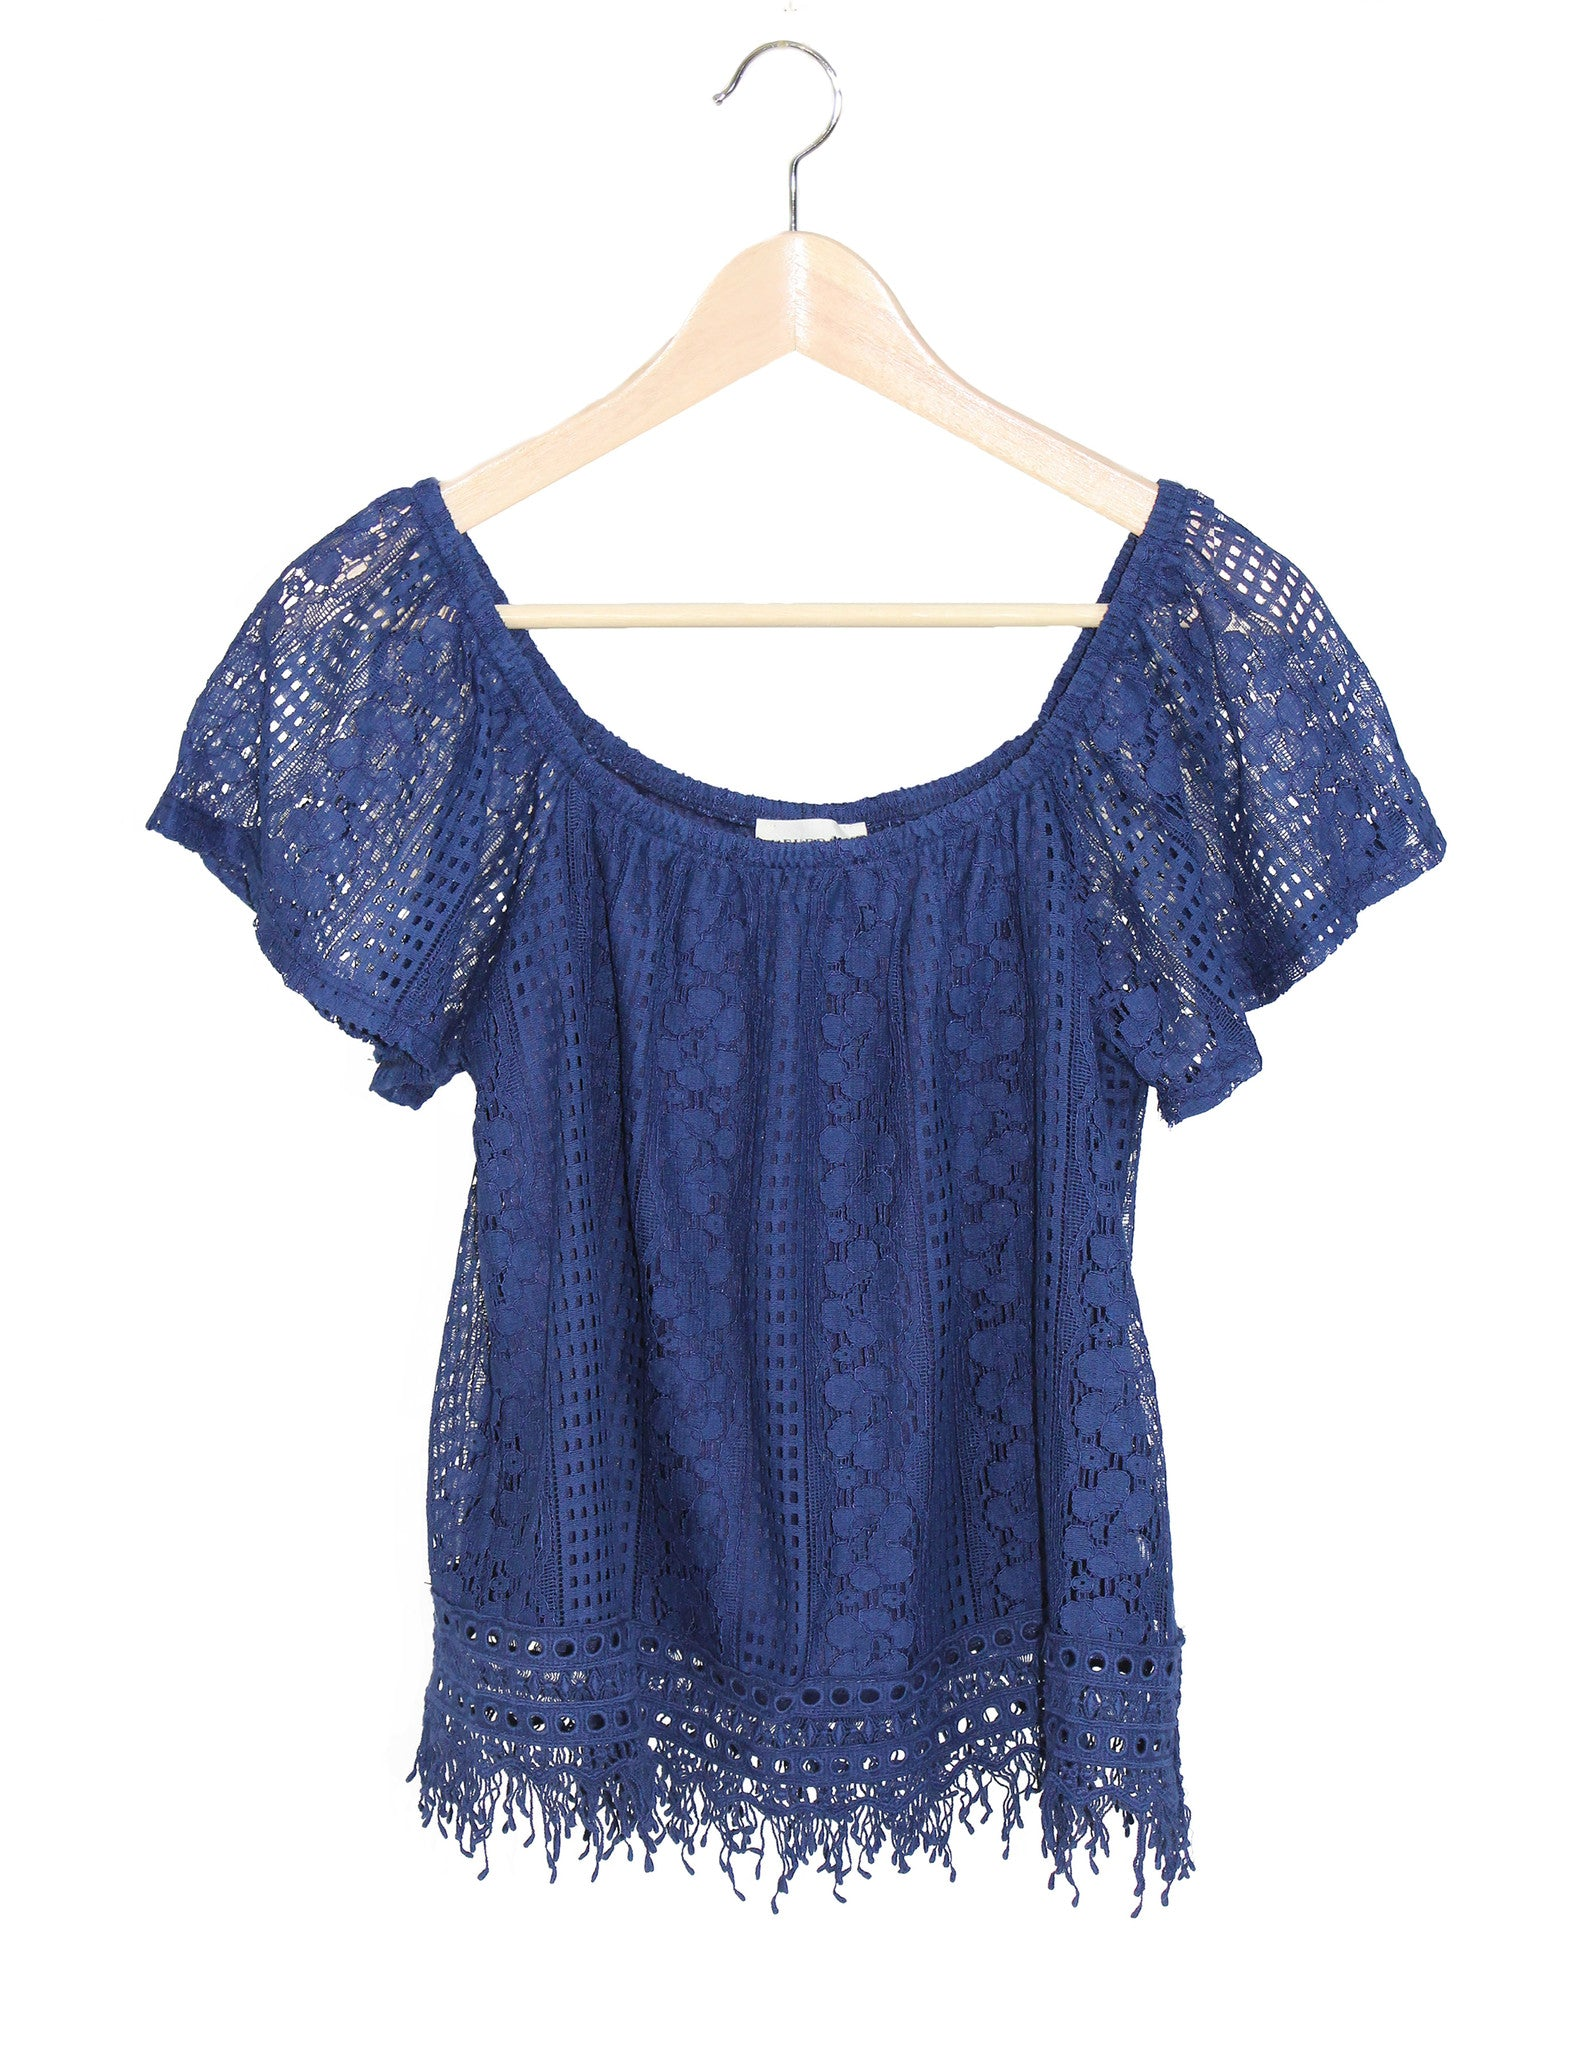 Spanish Navy Lace Top